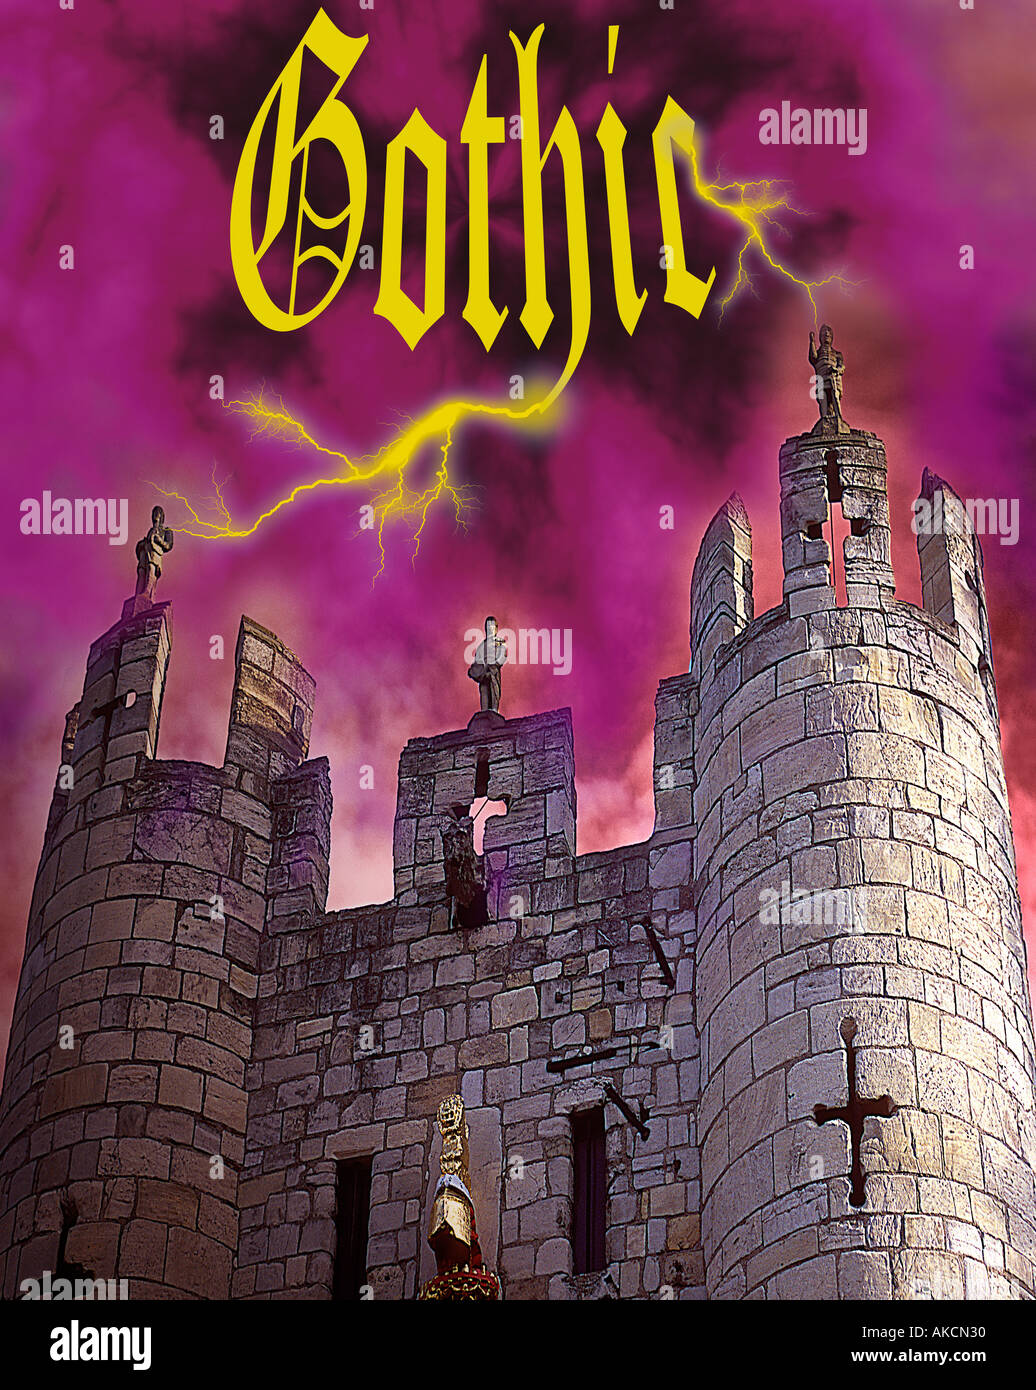 traditional view of horror gothic symbolism with imposing castle